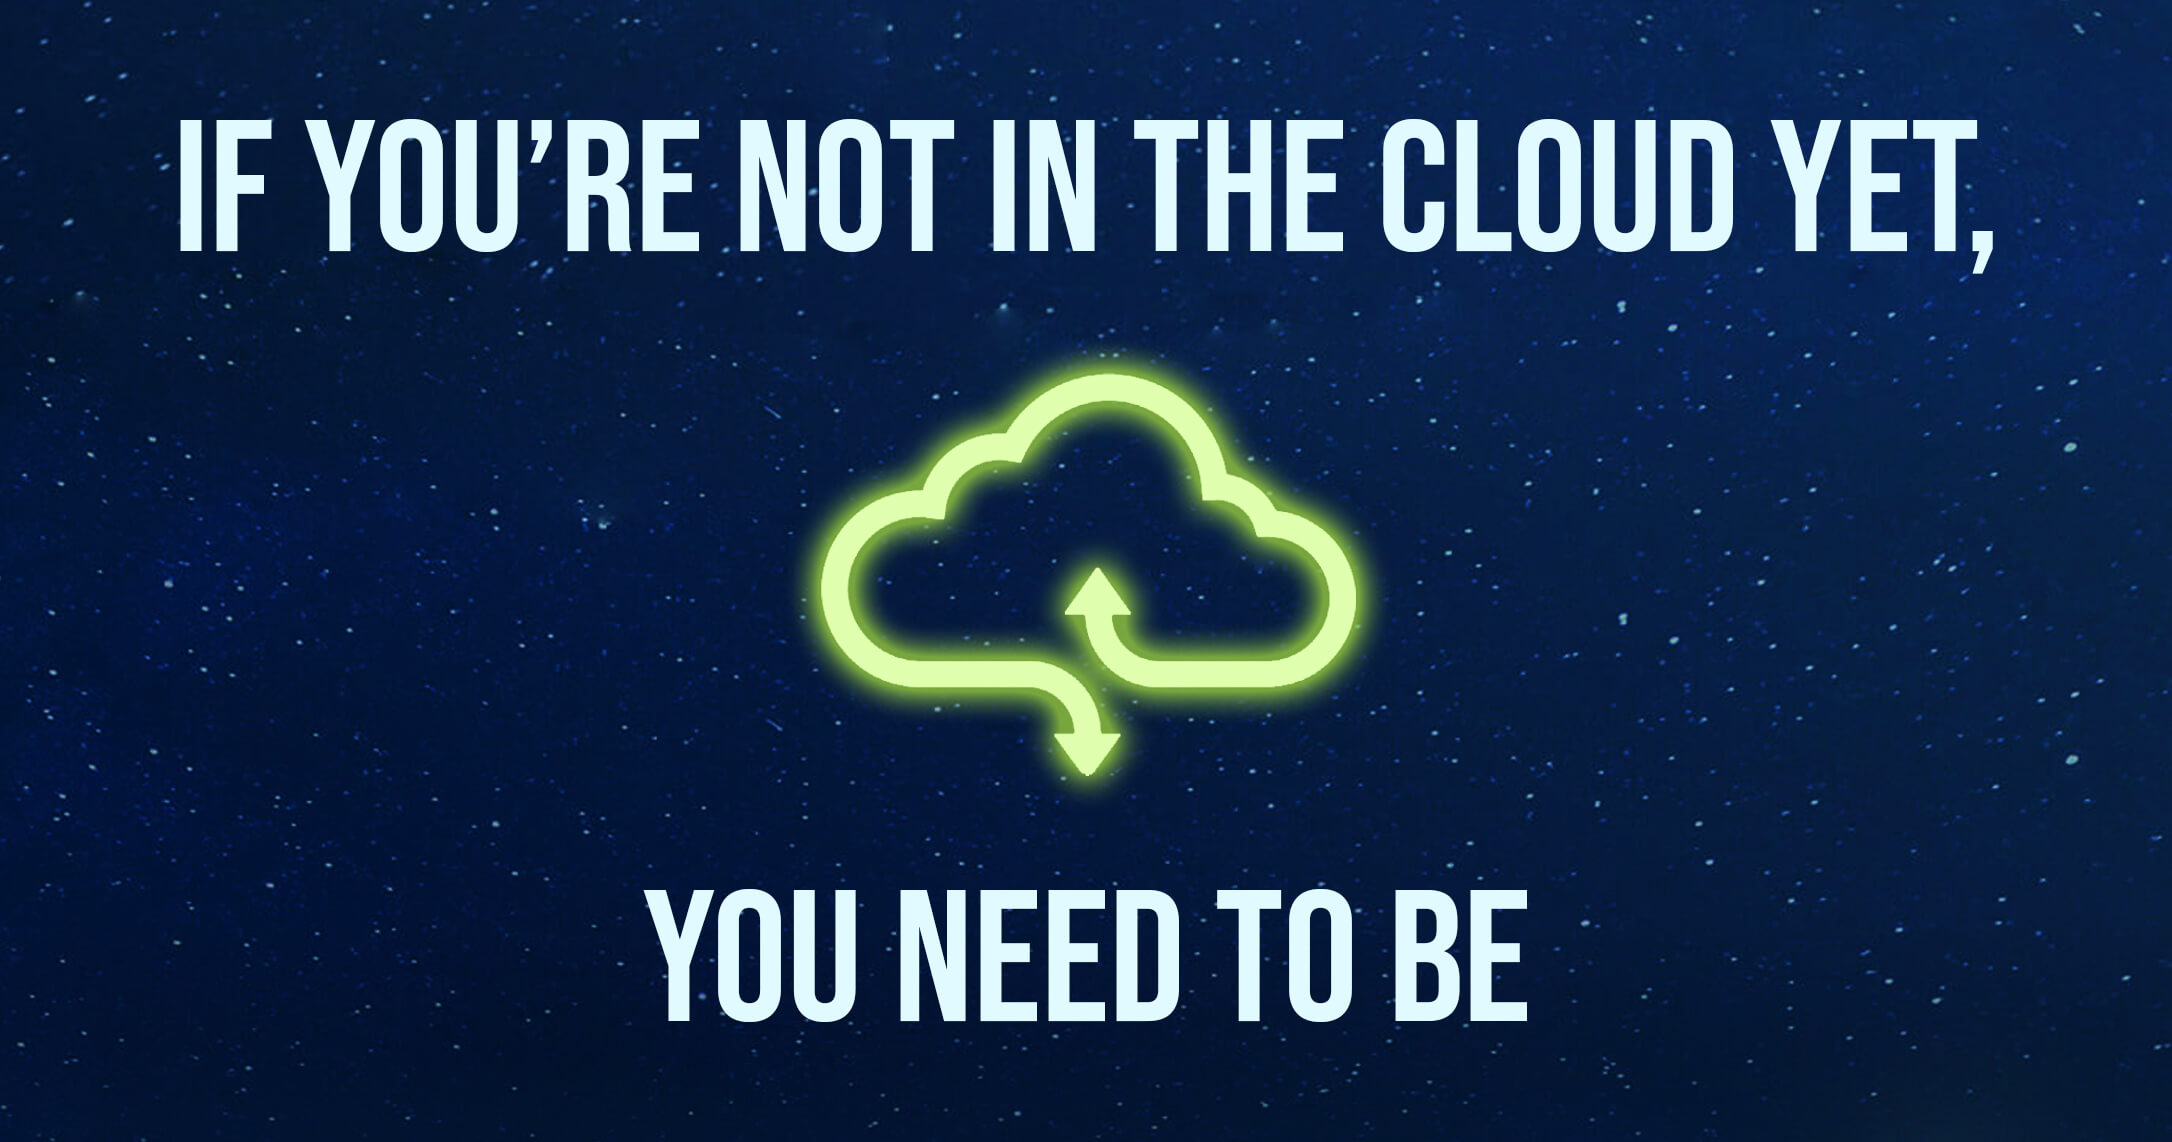 If You're Not in the Cloud Yet, You Need to Be